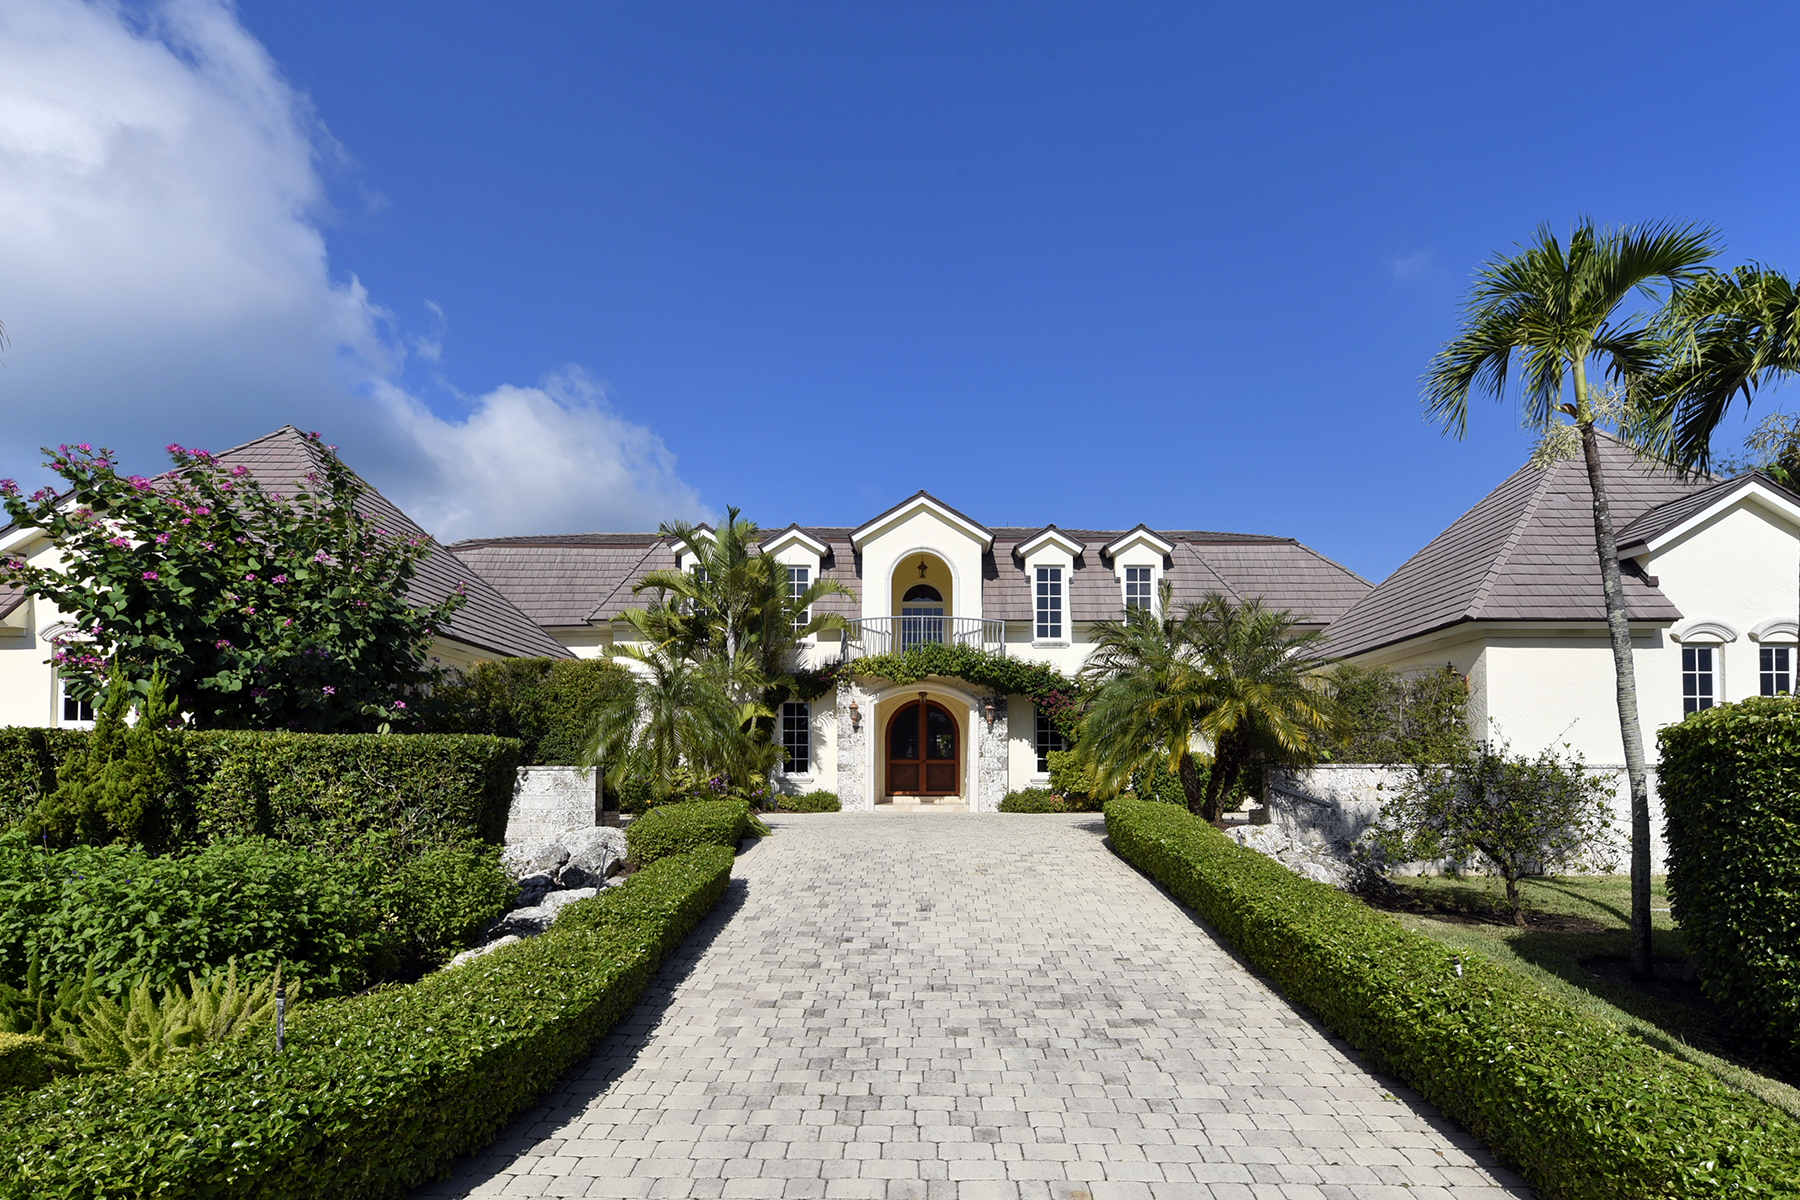 Villa per Vendita alle ore Expansive Waterfront Home at Ocean Reef 25 Bay Ridge Road Ocean Reef Community, Key Largo, Florida, 33037 Stati Uniti